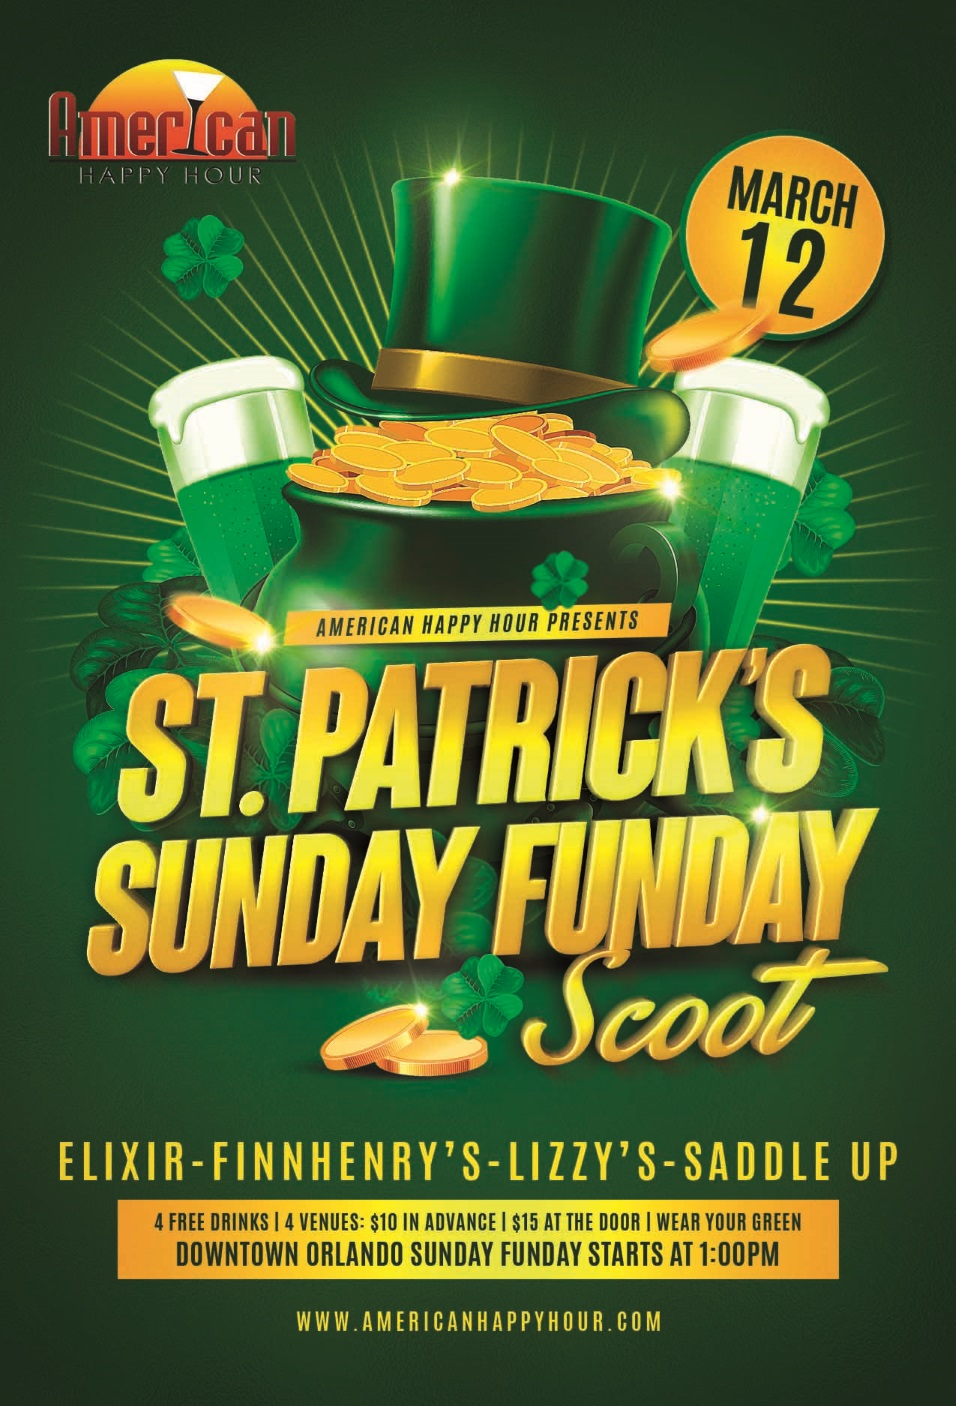 st-patricks-sunday-funday-scoot-party-flyer-xsmall